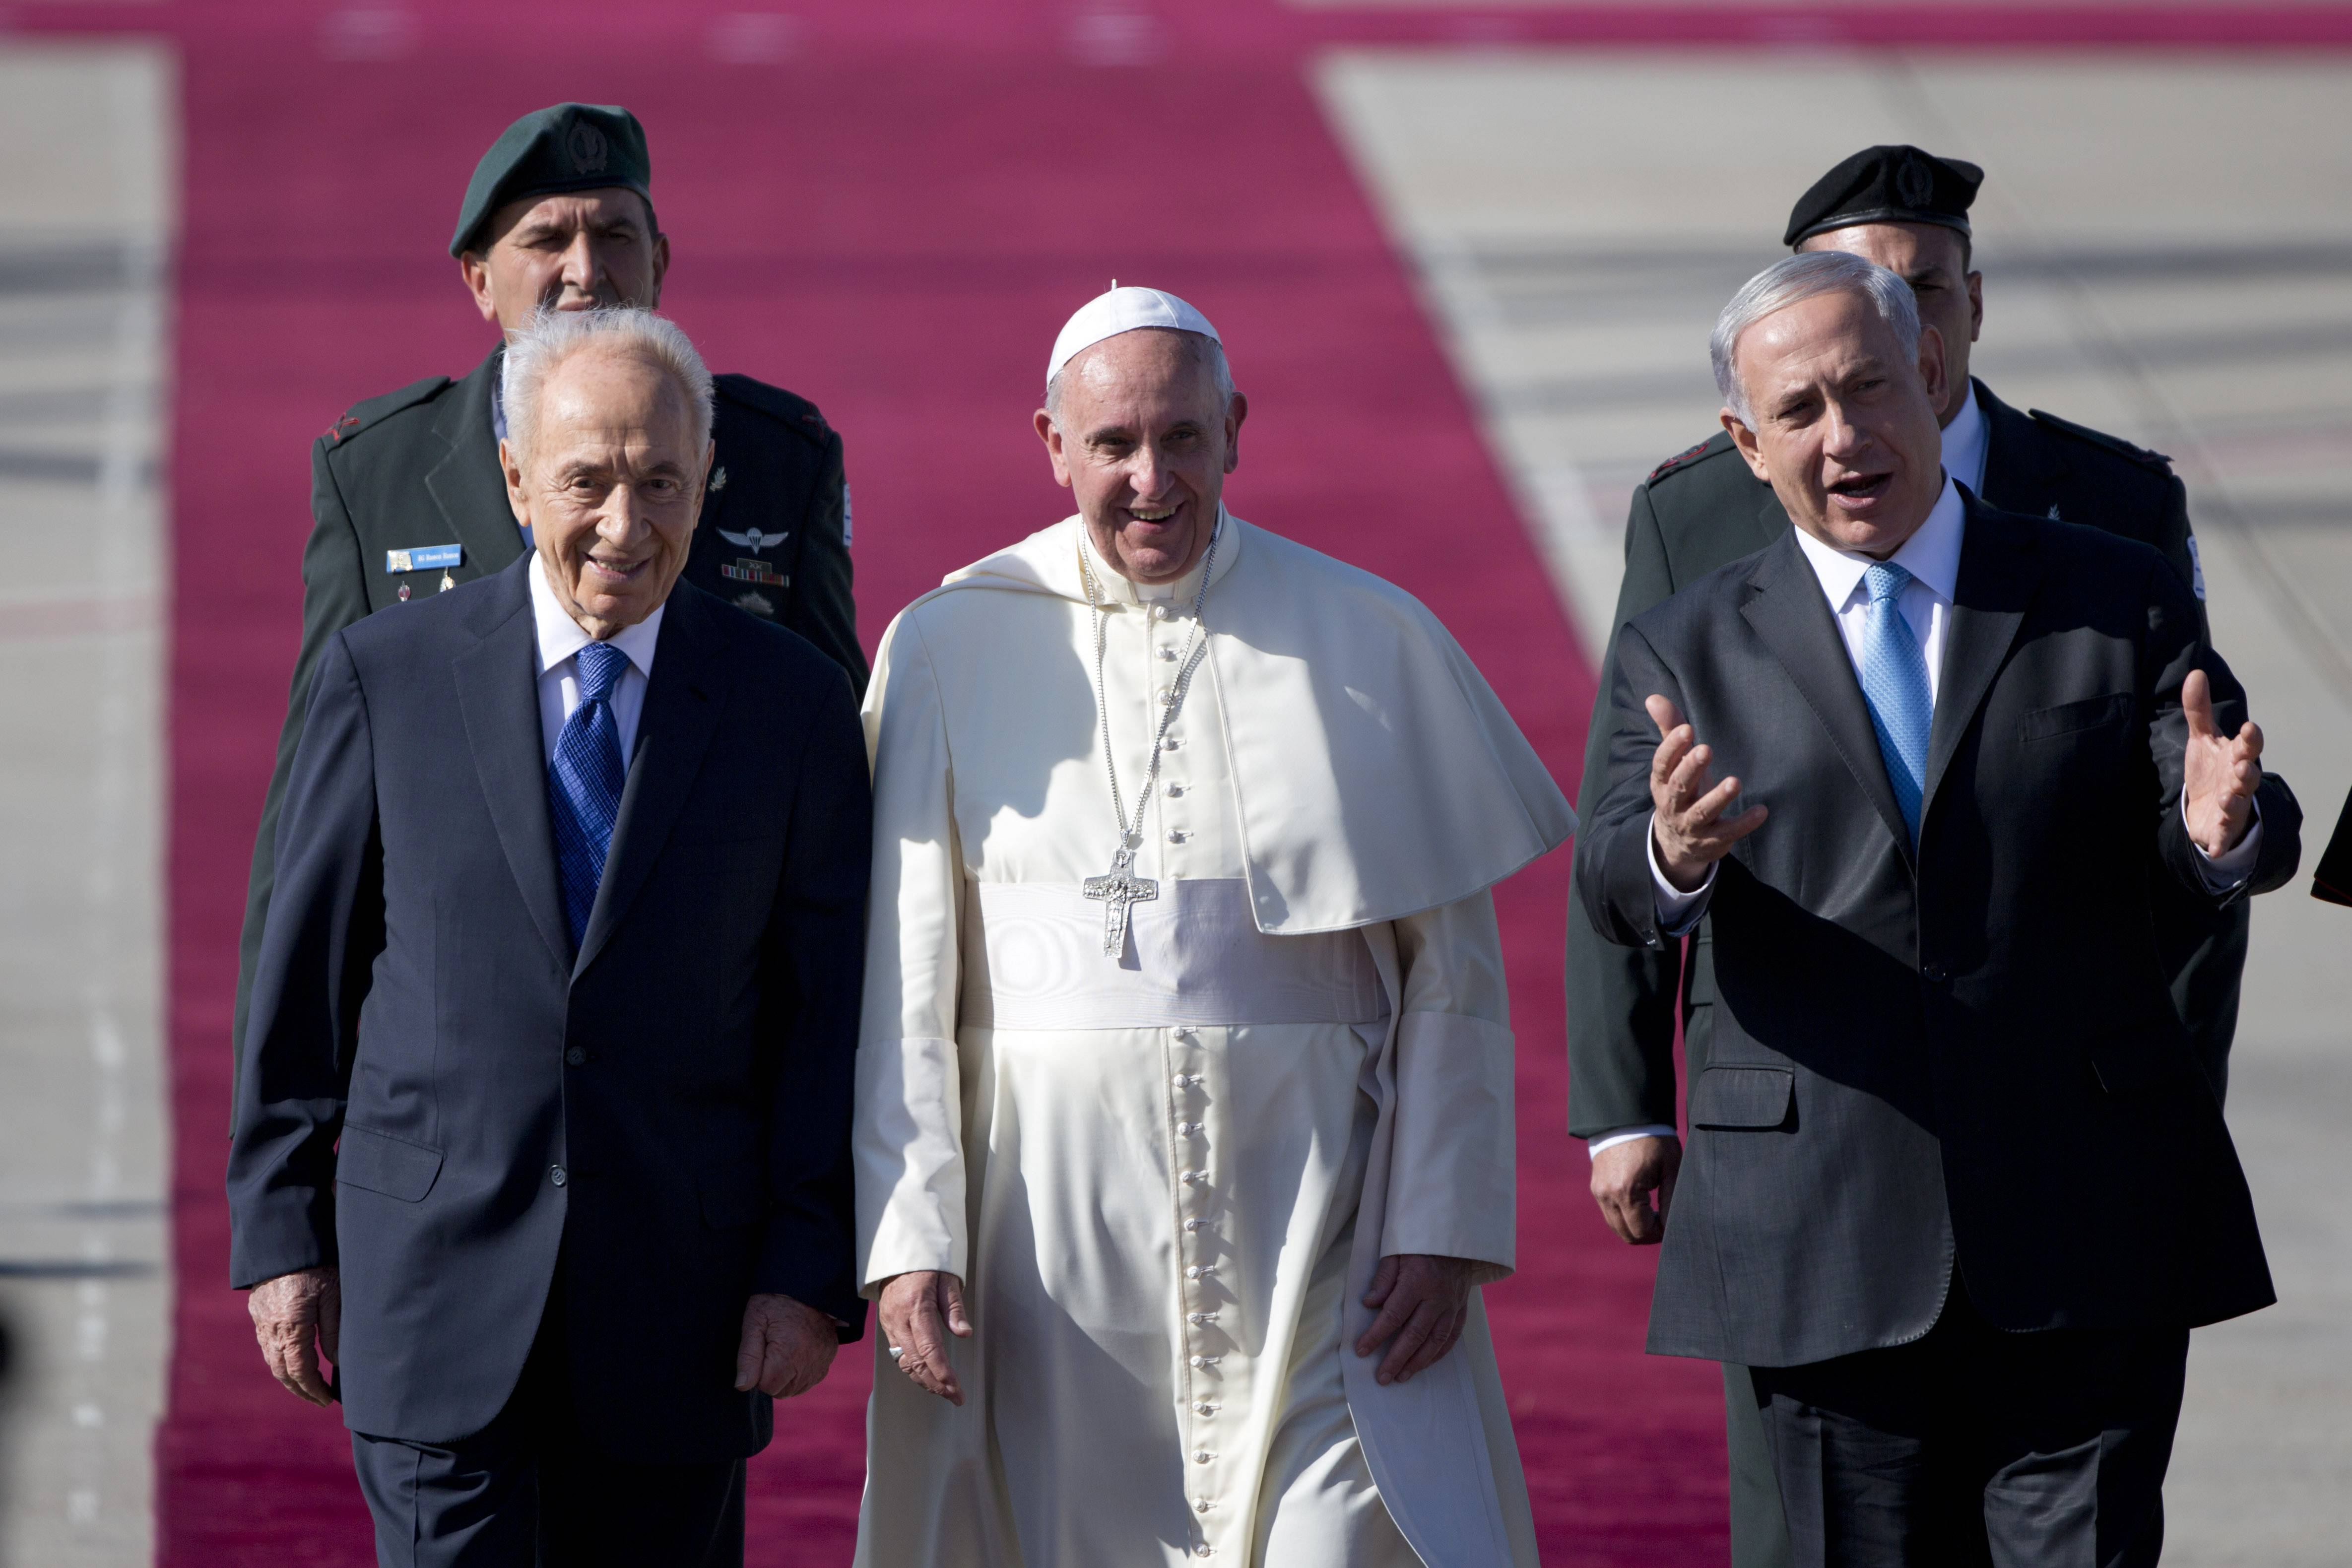 Pope Francis, center, walks with Israeli President Shimon Peres, left, and Prime Minister Benjamin Netanyahu, right, during an  official arrival ceremony at Ben Gurion airport near Tel Aviv, Israel, Sunday.